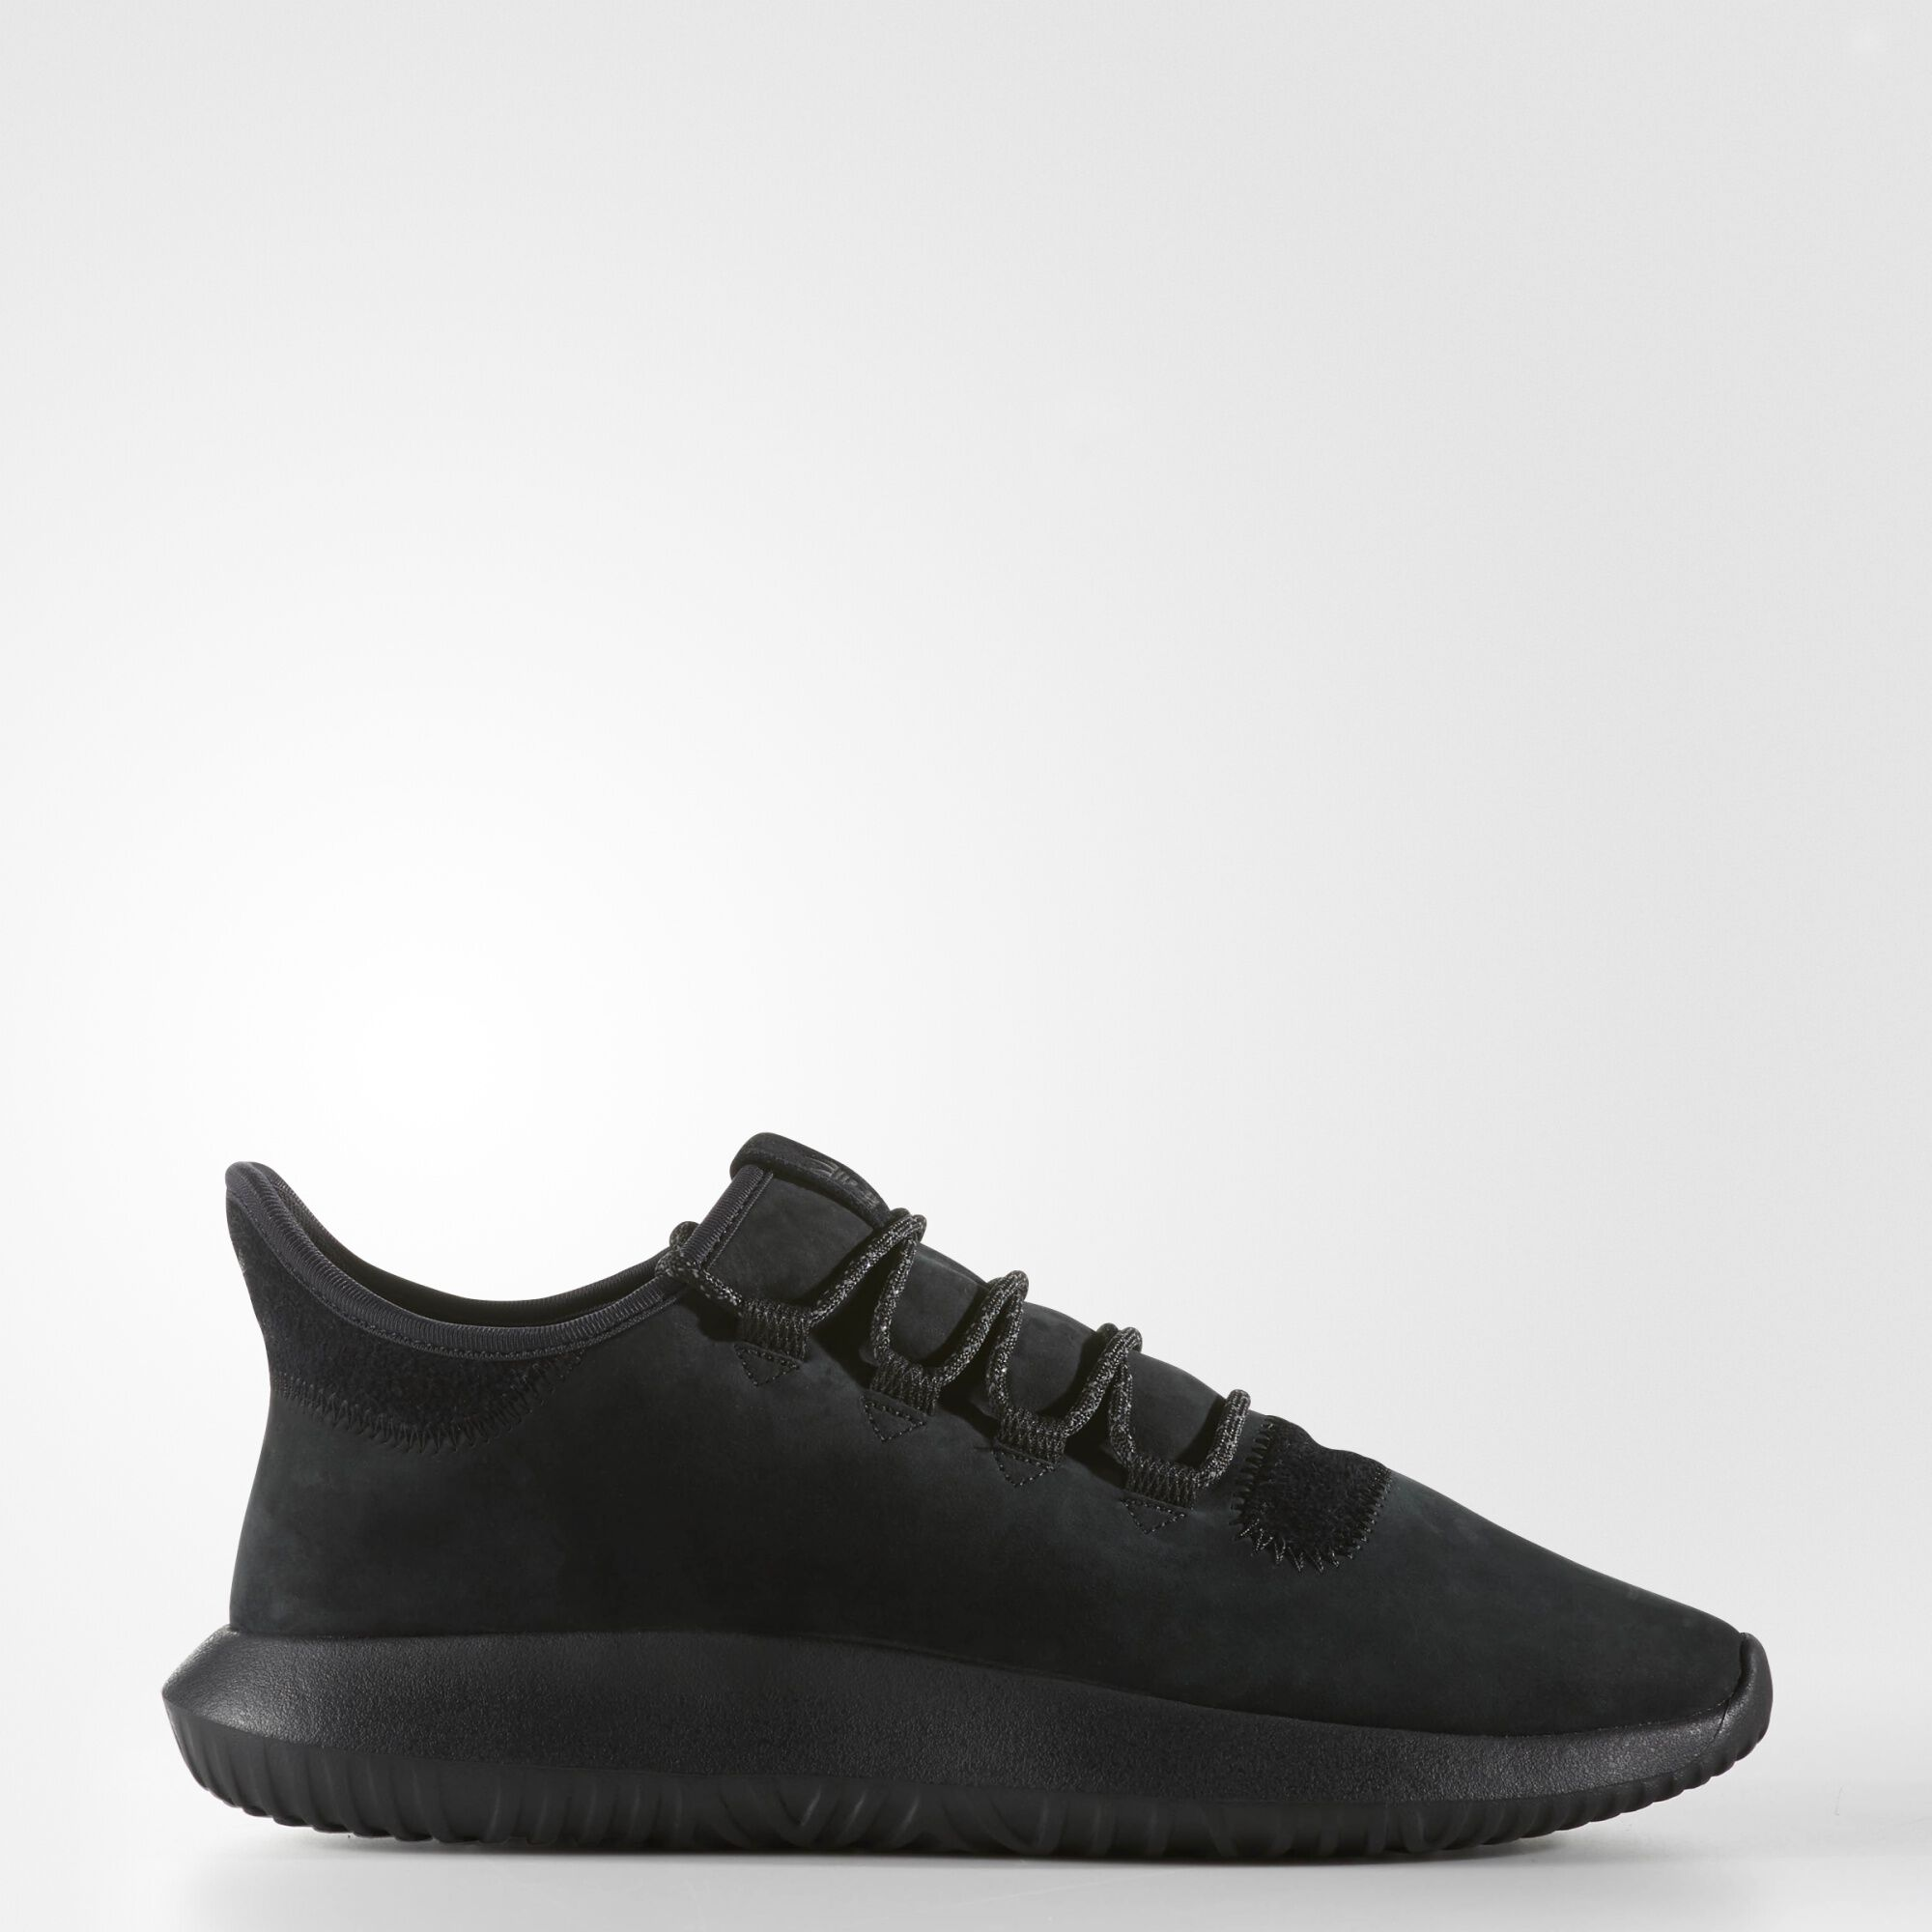 Adidas Originals Tubular Radial Knit Zappos Free Shipping